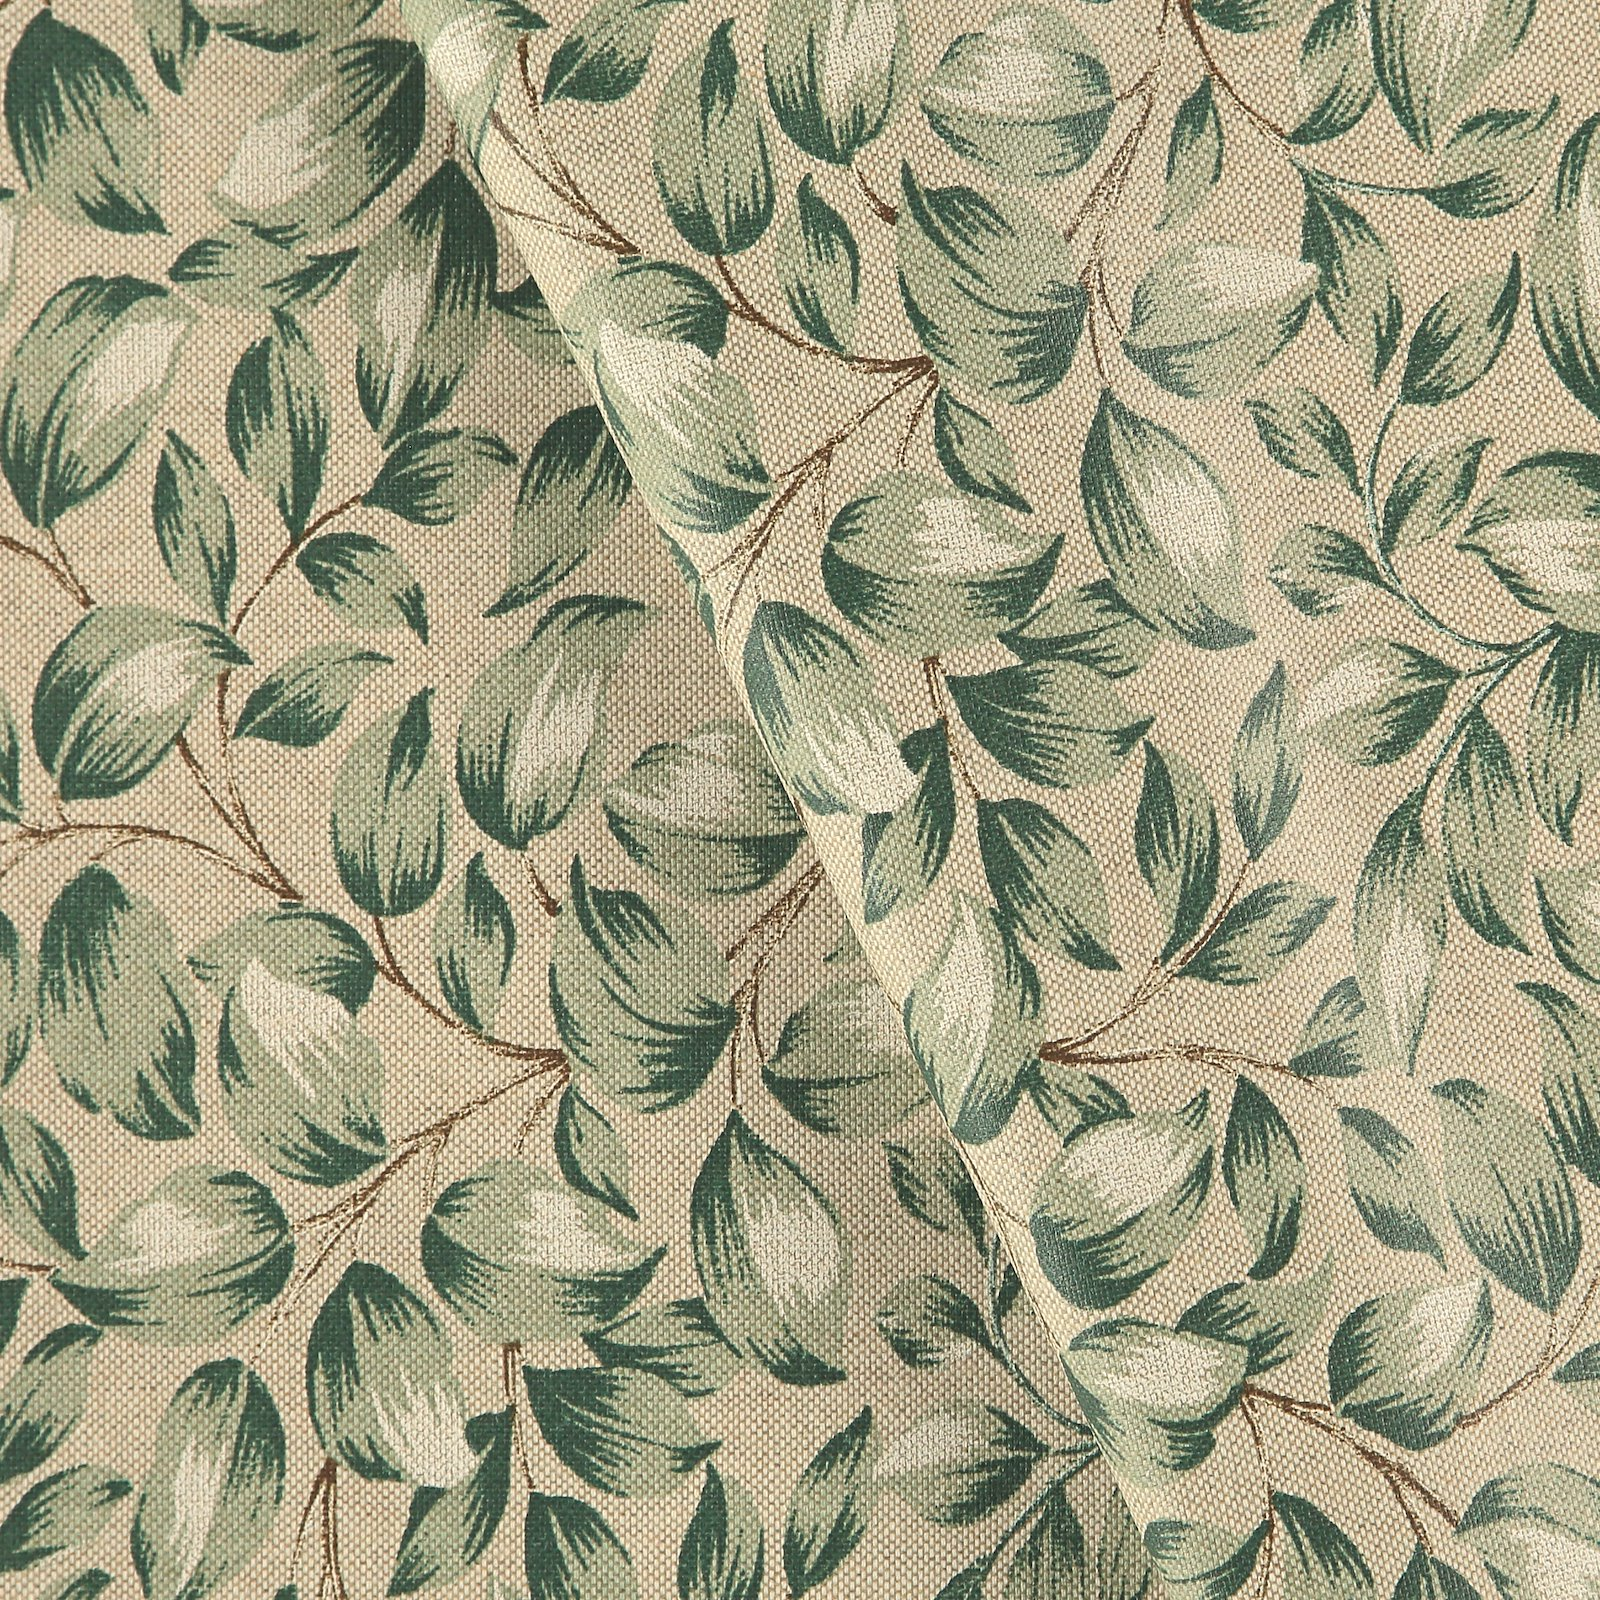 Woven oilcloth linenlook w green leaves